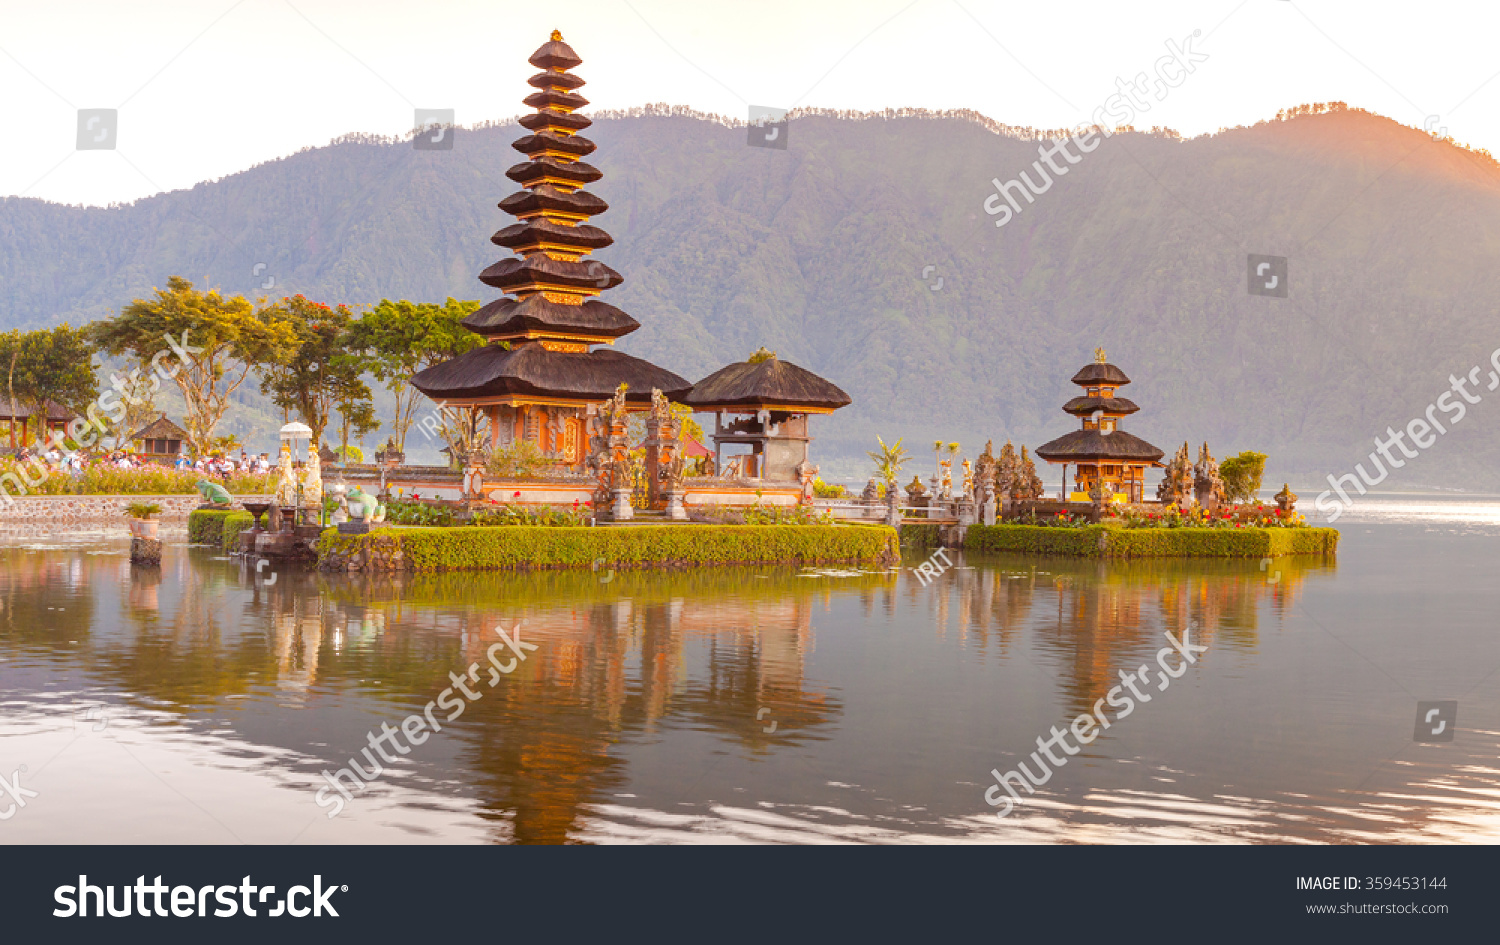 Hindu procession in Ulun Danu temple Beratan Lake in Bali Indonesia